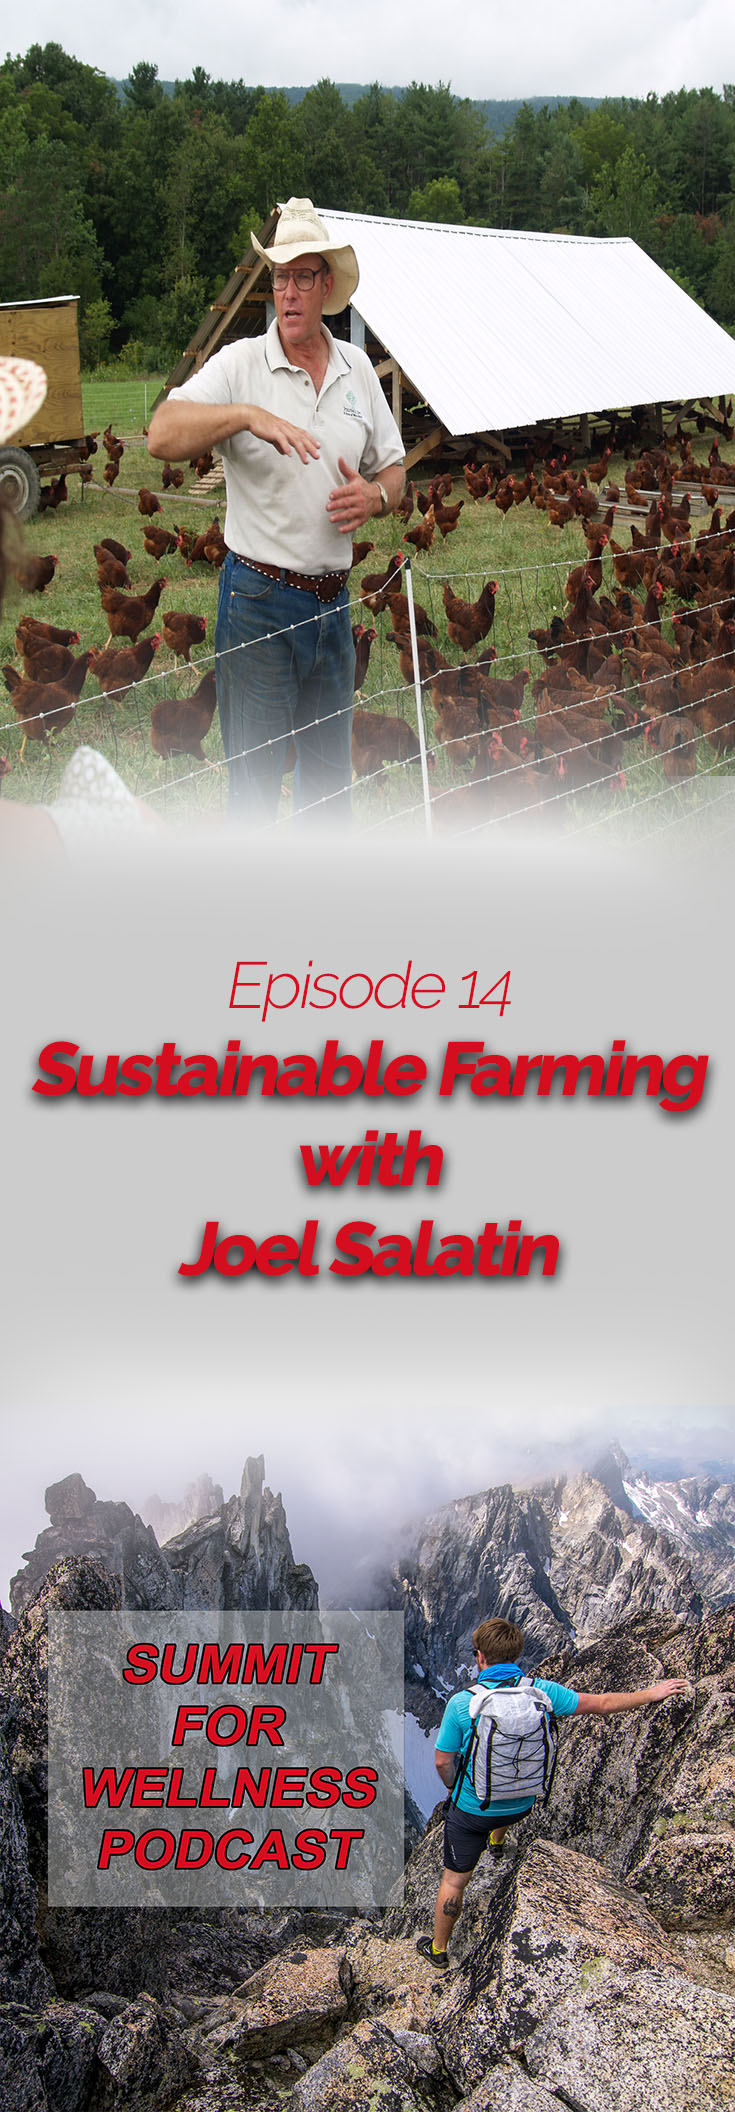 Join Joel Salatin as he provides ways to improve farming methods of animals.